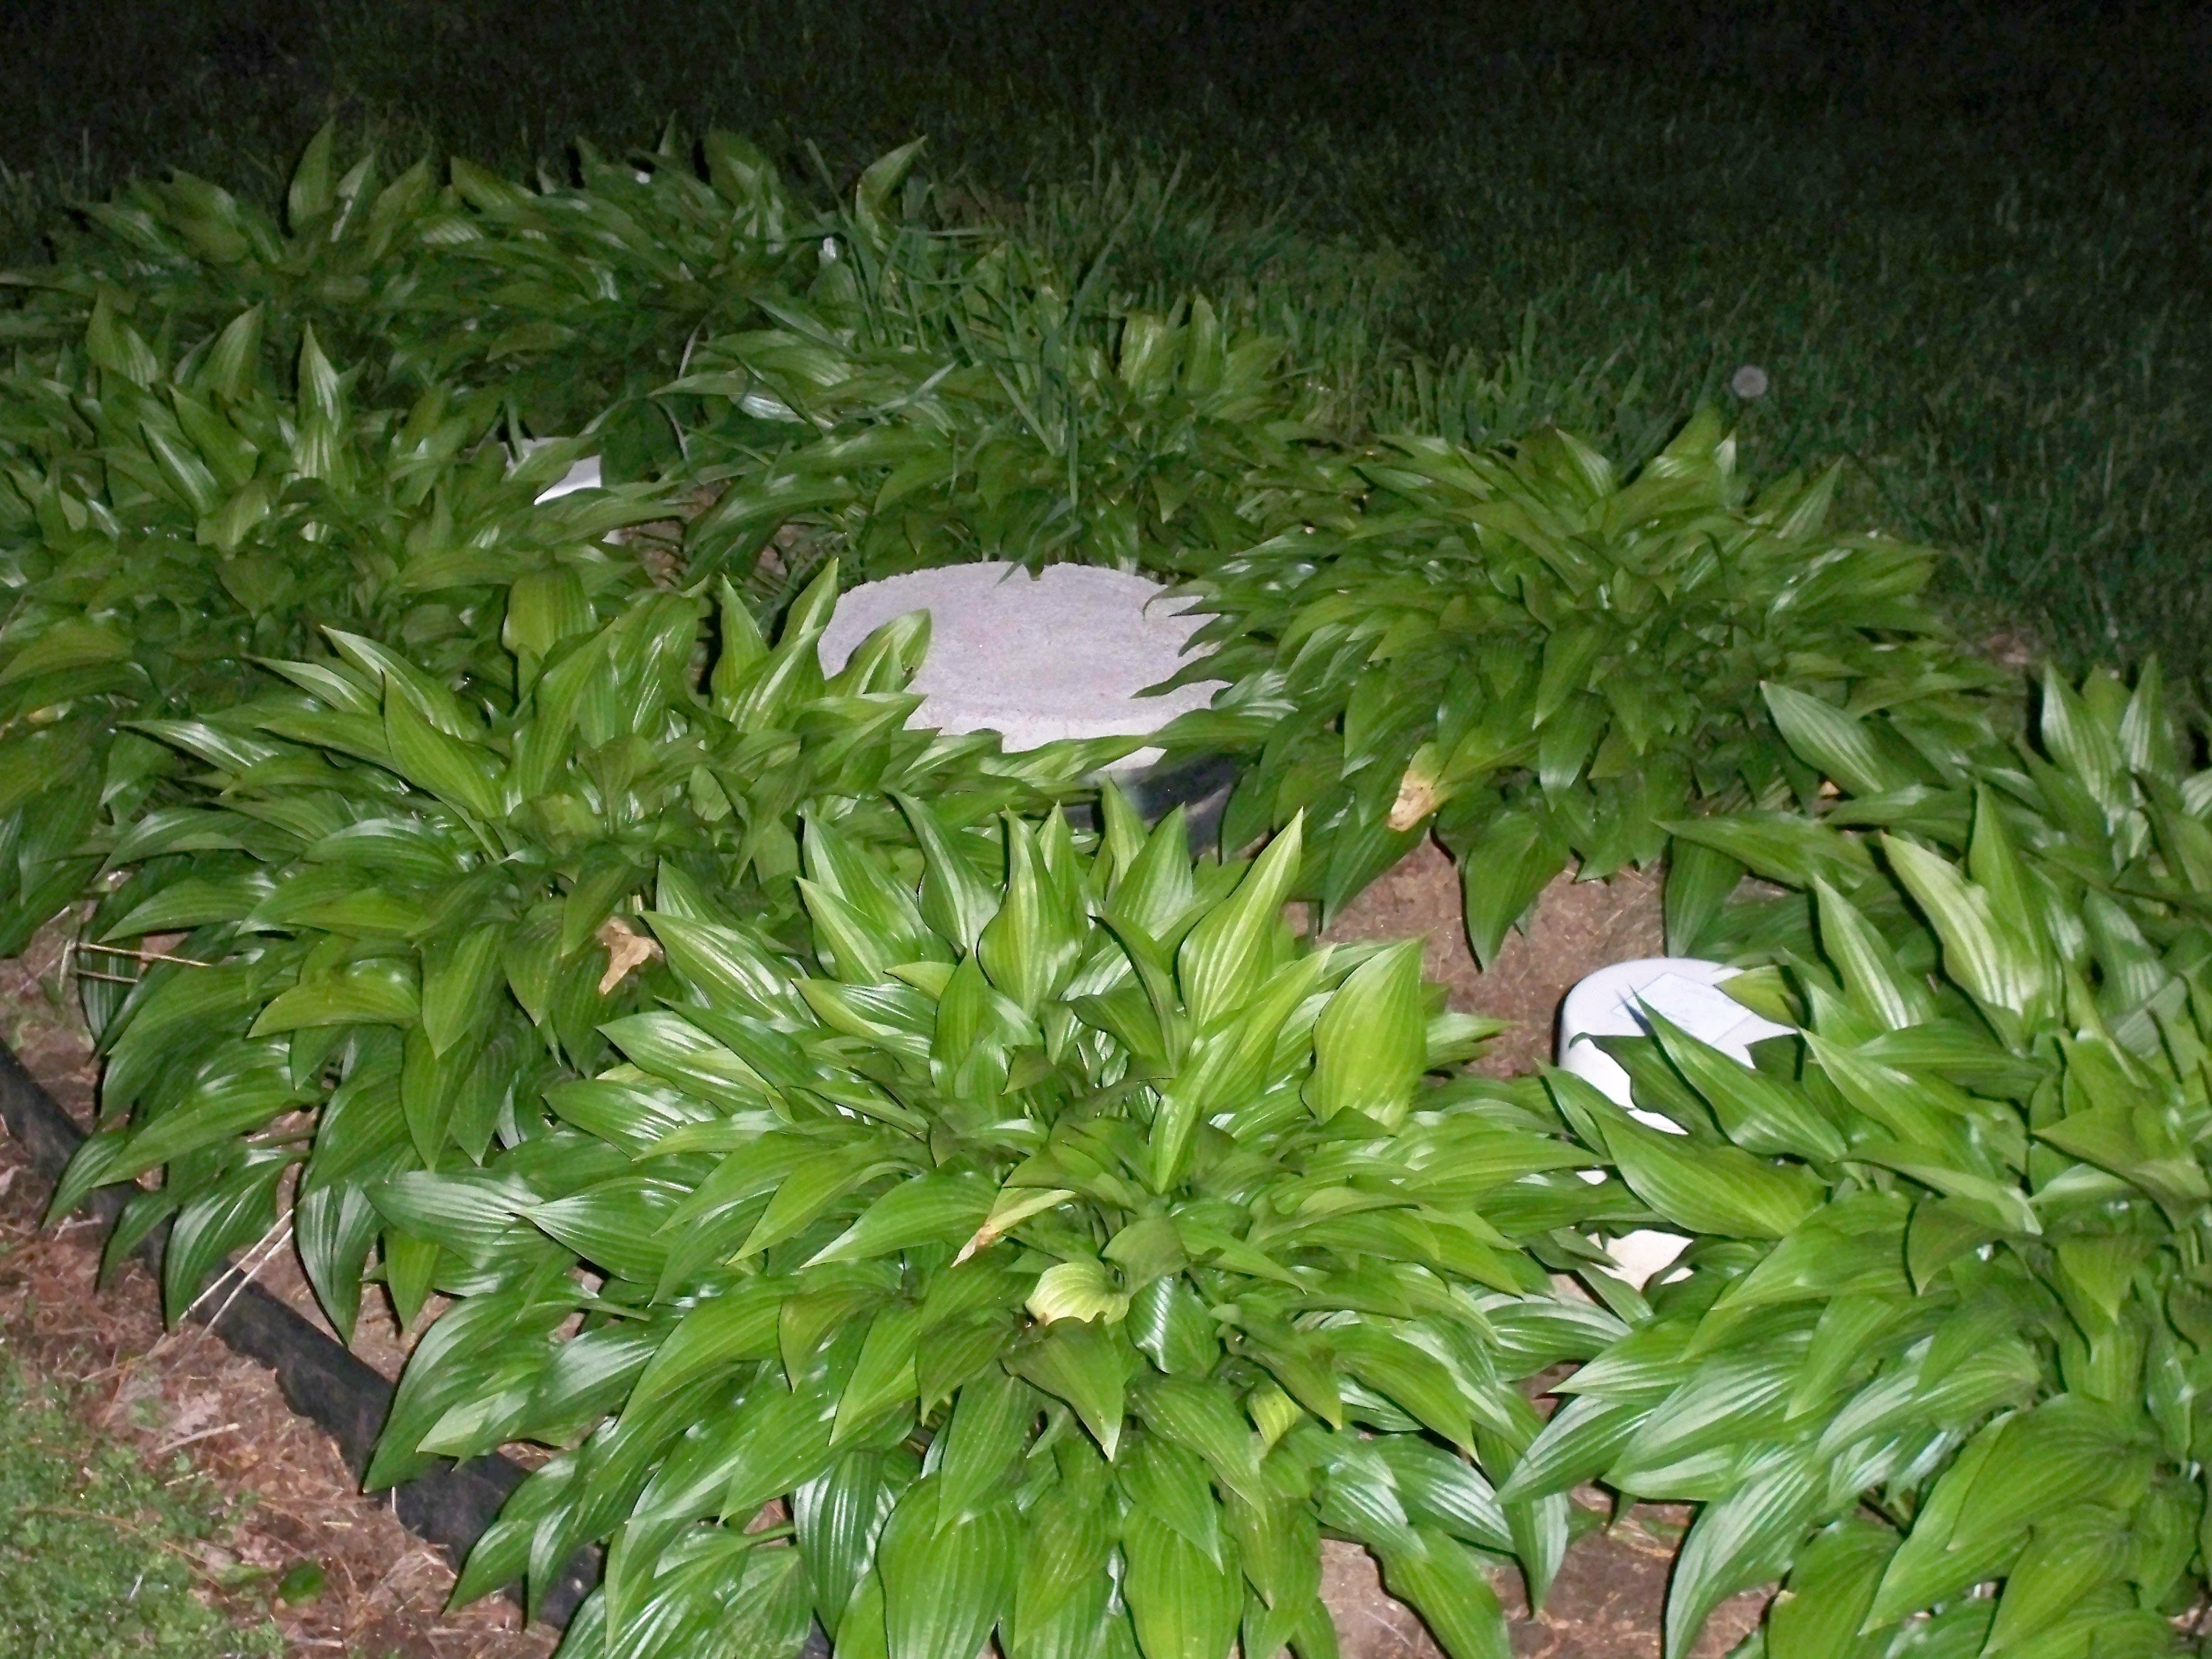 Pretty Hostas Cover A Septic System Out My Back Door At